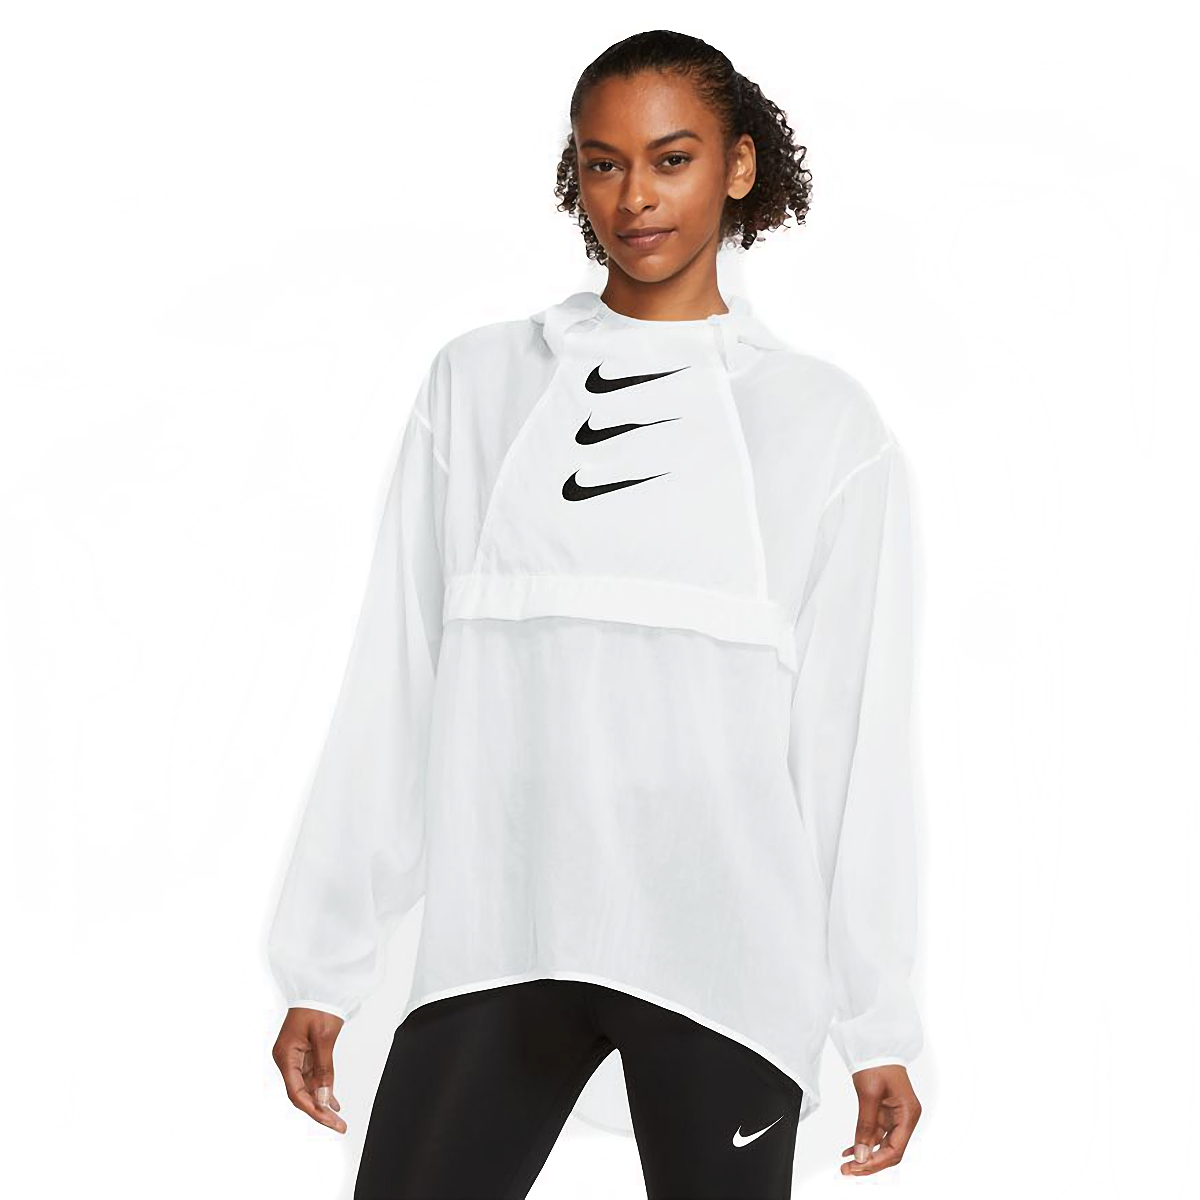 Women's Nike Run Division Package Running Jacket - Color: White/Black - Size: XS, White/Black, large, image 1